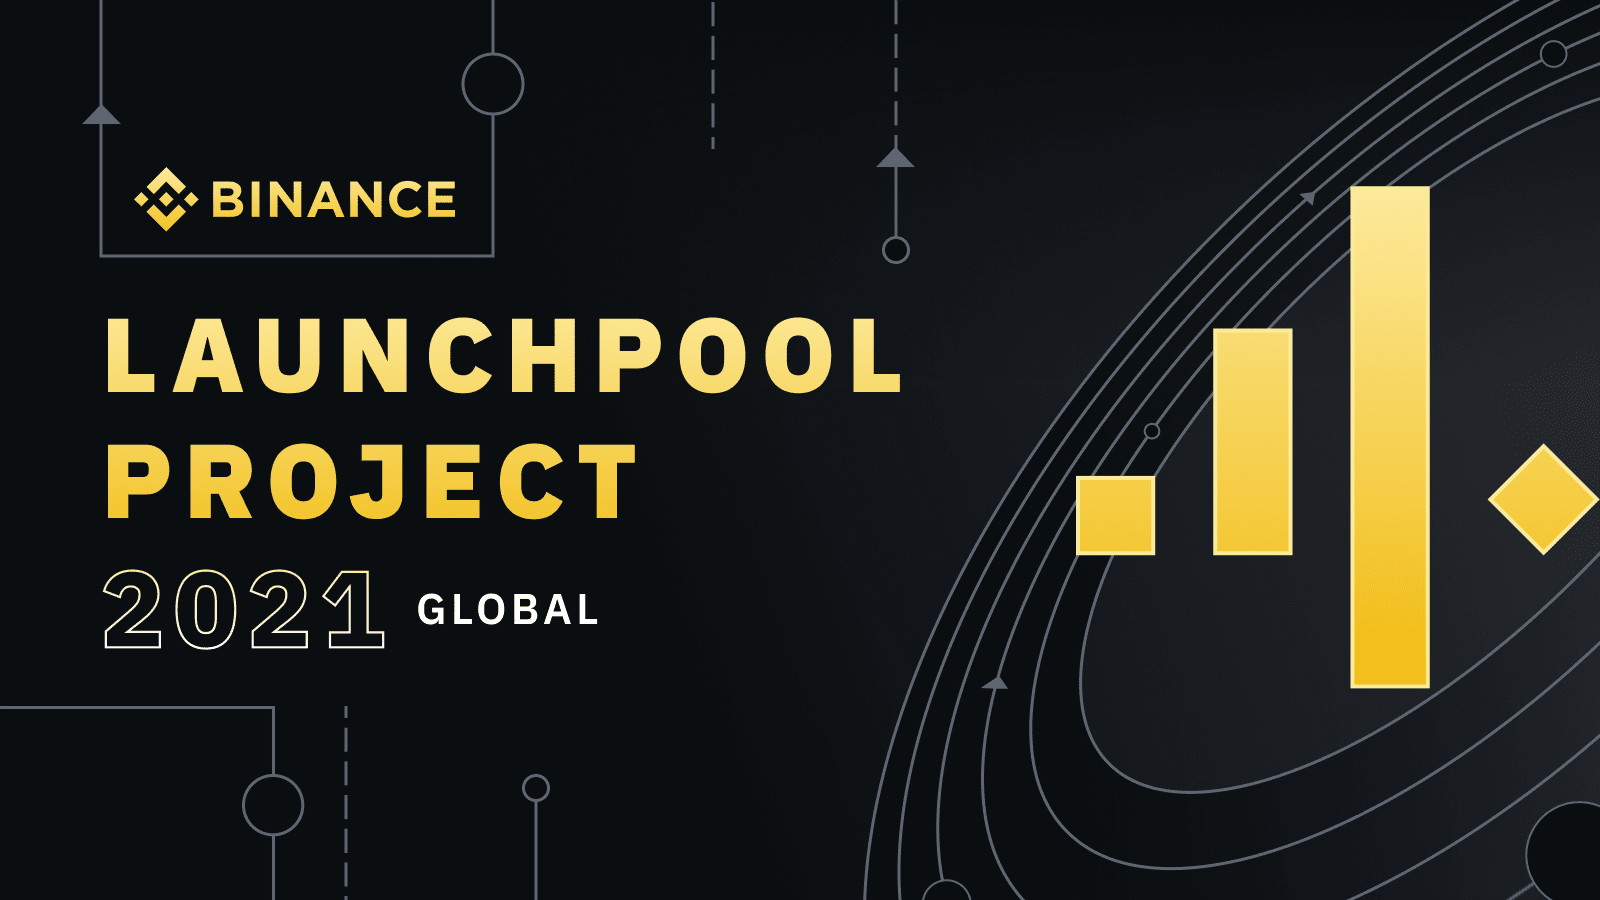 Binance Awards 2021- Launchpool Project of the YearCryptocurrency Trading Signals, Strategies & Templates | DexStrats